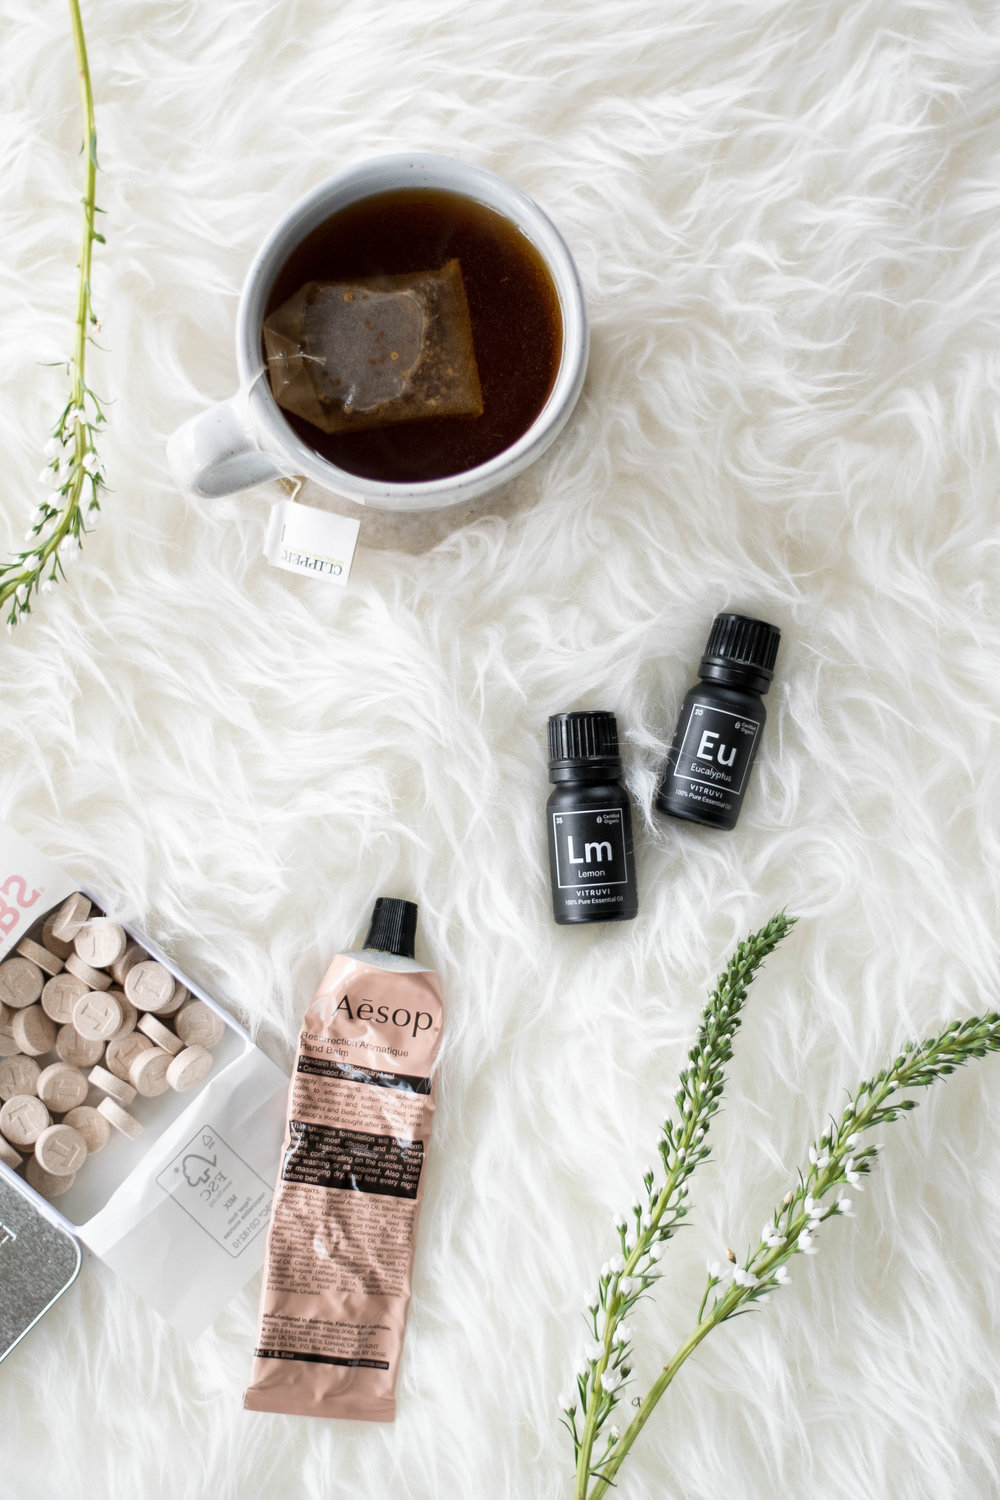 Incorporating Essential Oils Into The Everyday with Vitruvi | All Purpose Flour Child